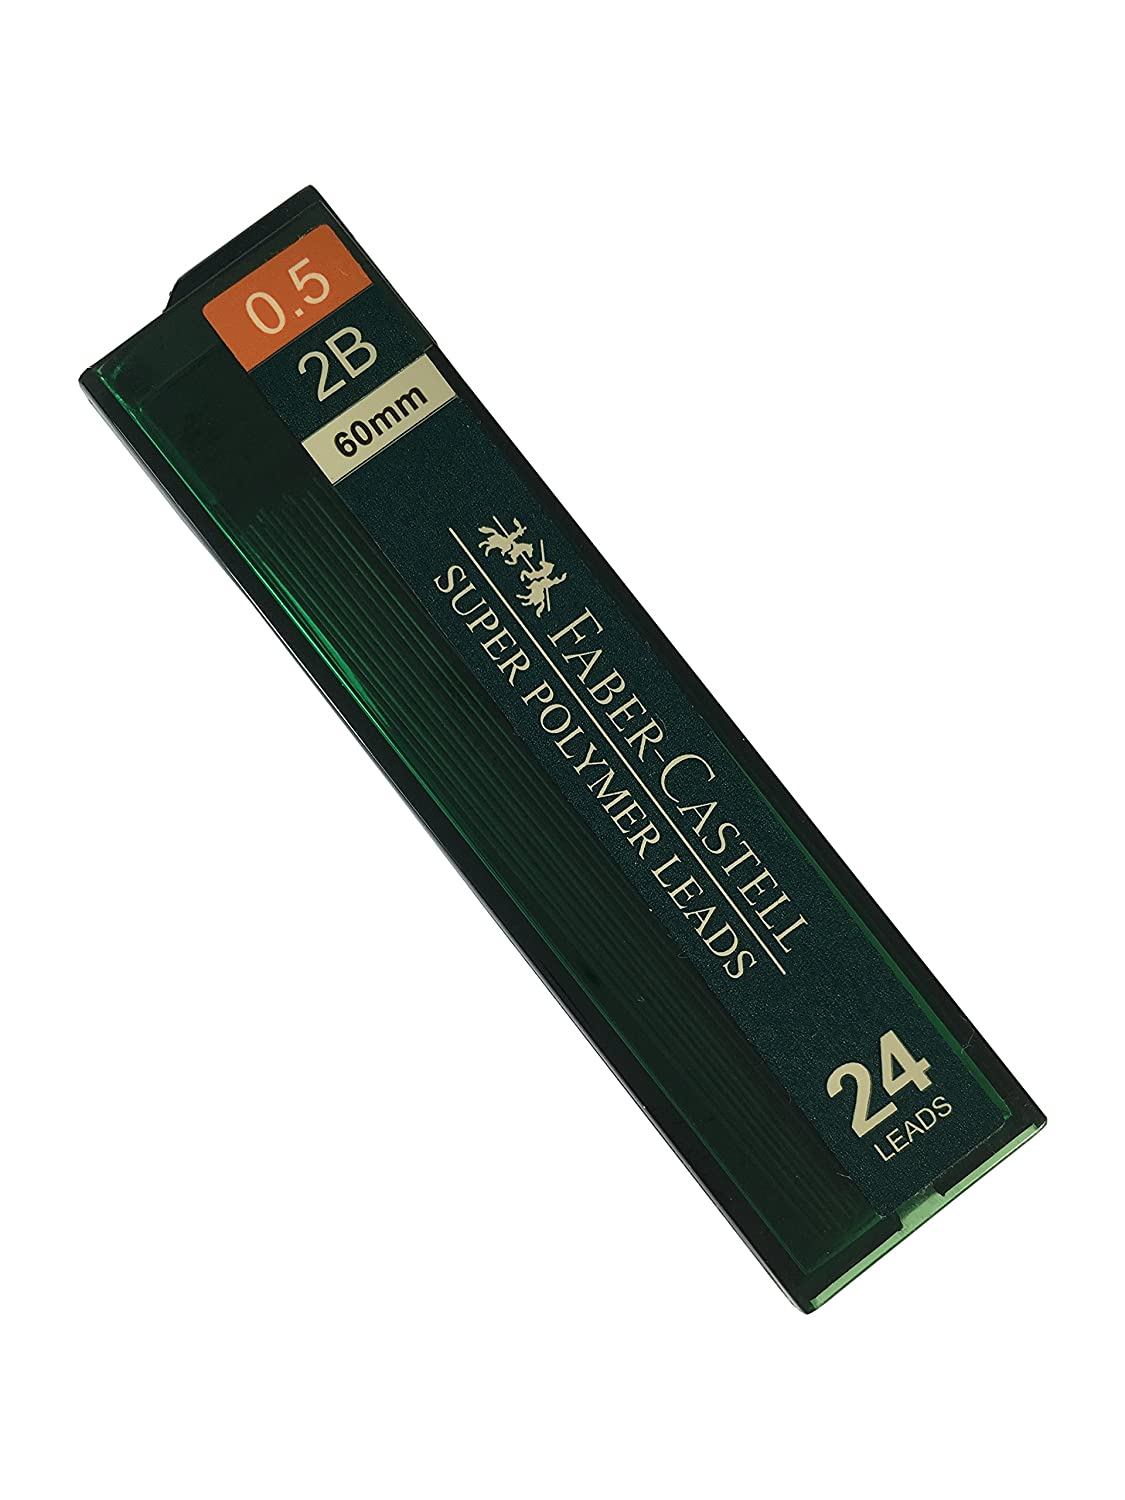 0.5 mm 2B Lead Refills Strong Dark Smooth Leads Mechanical Pencil Lead Refills 4 Tubes, 24 Leads Per Tube - Total 96 leads